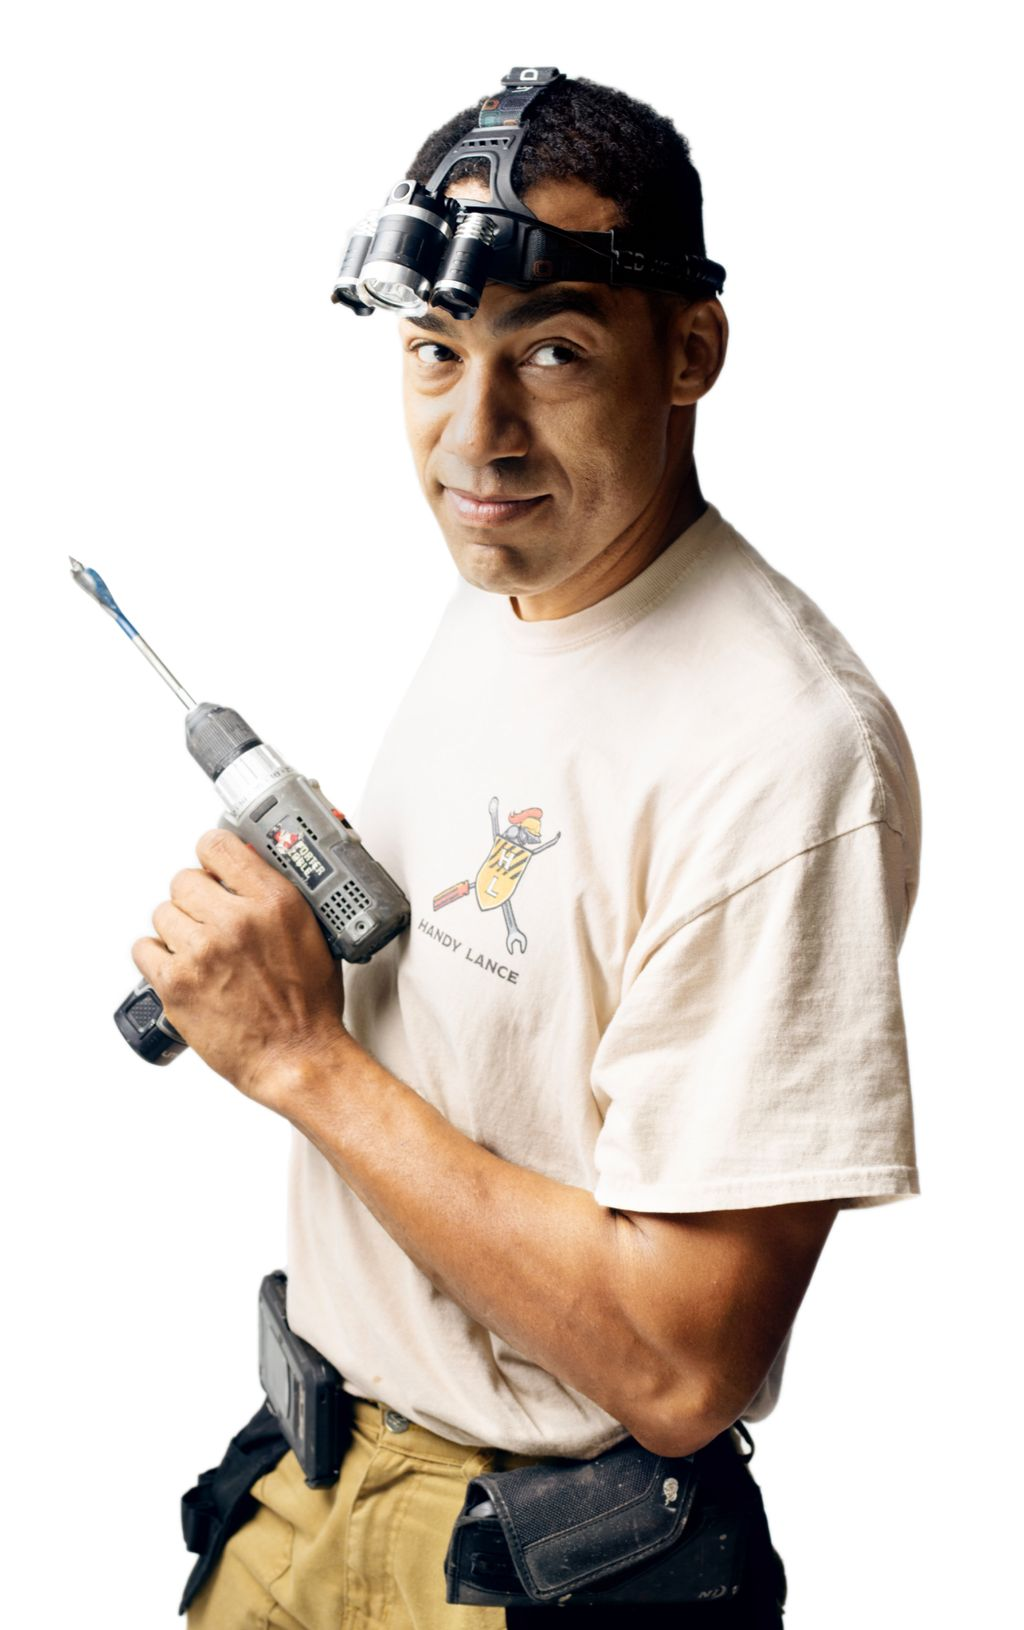 Photo of Thumbtack handyman